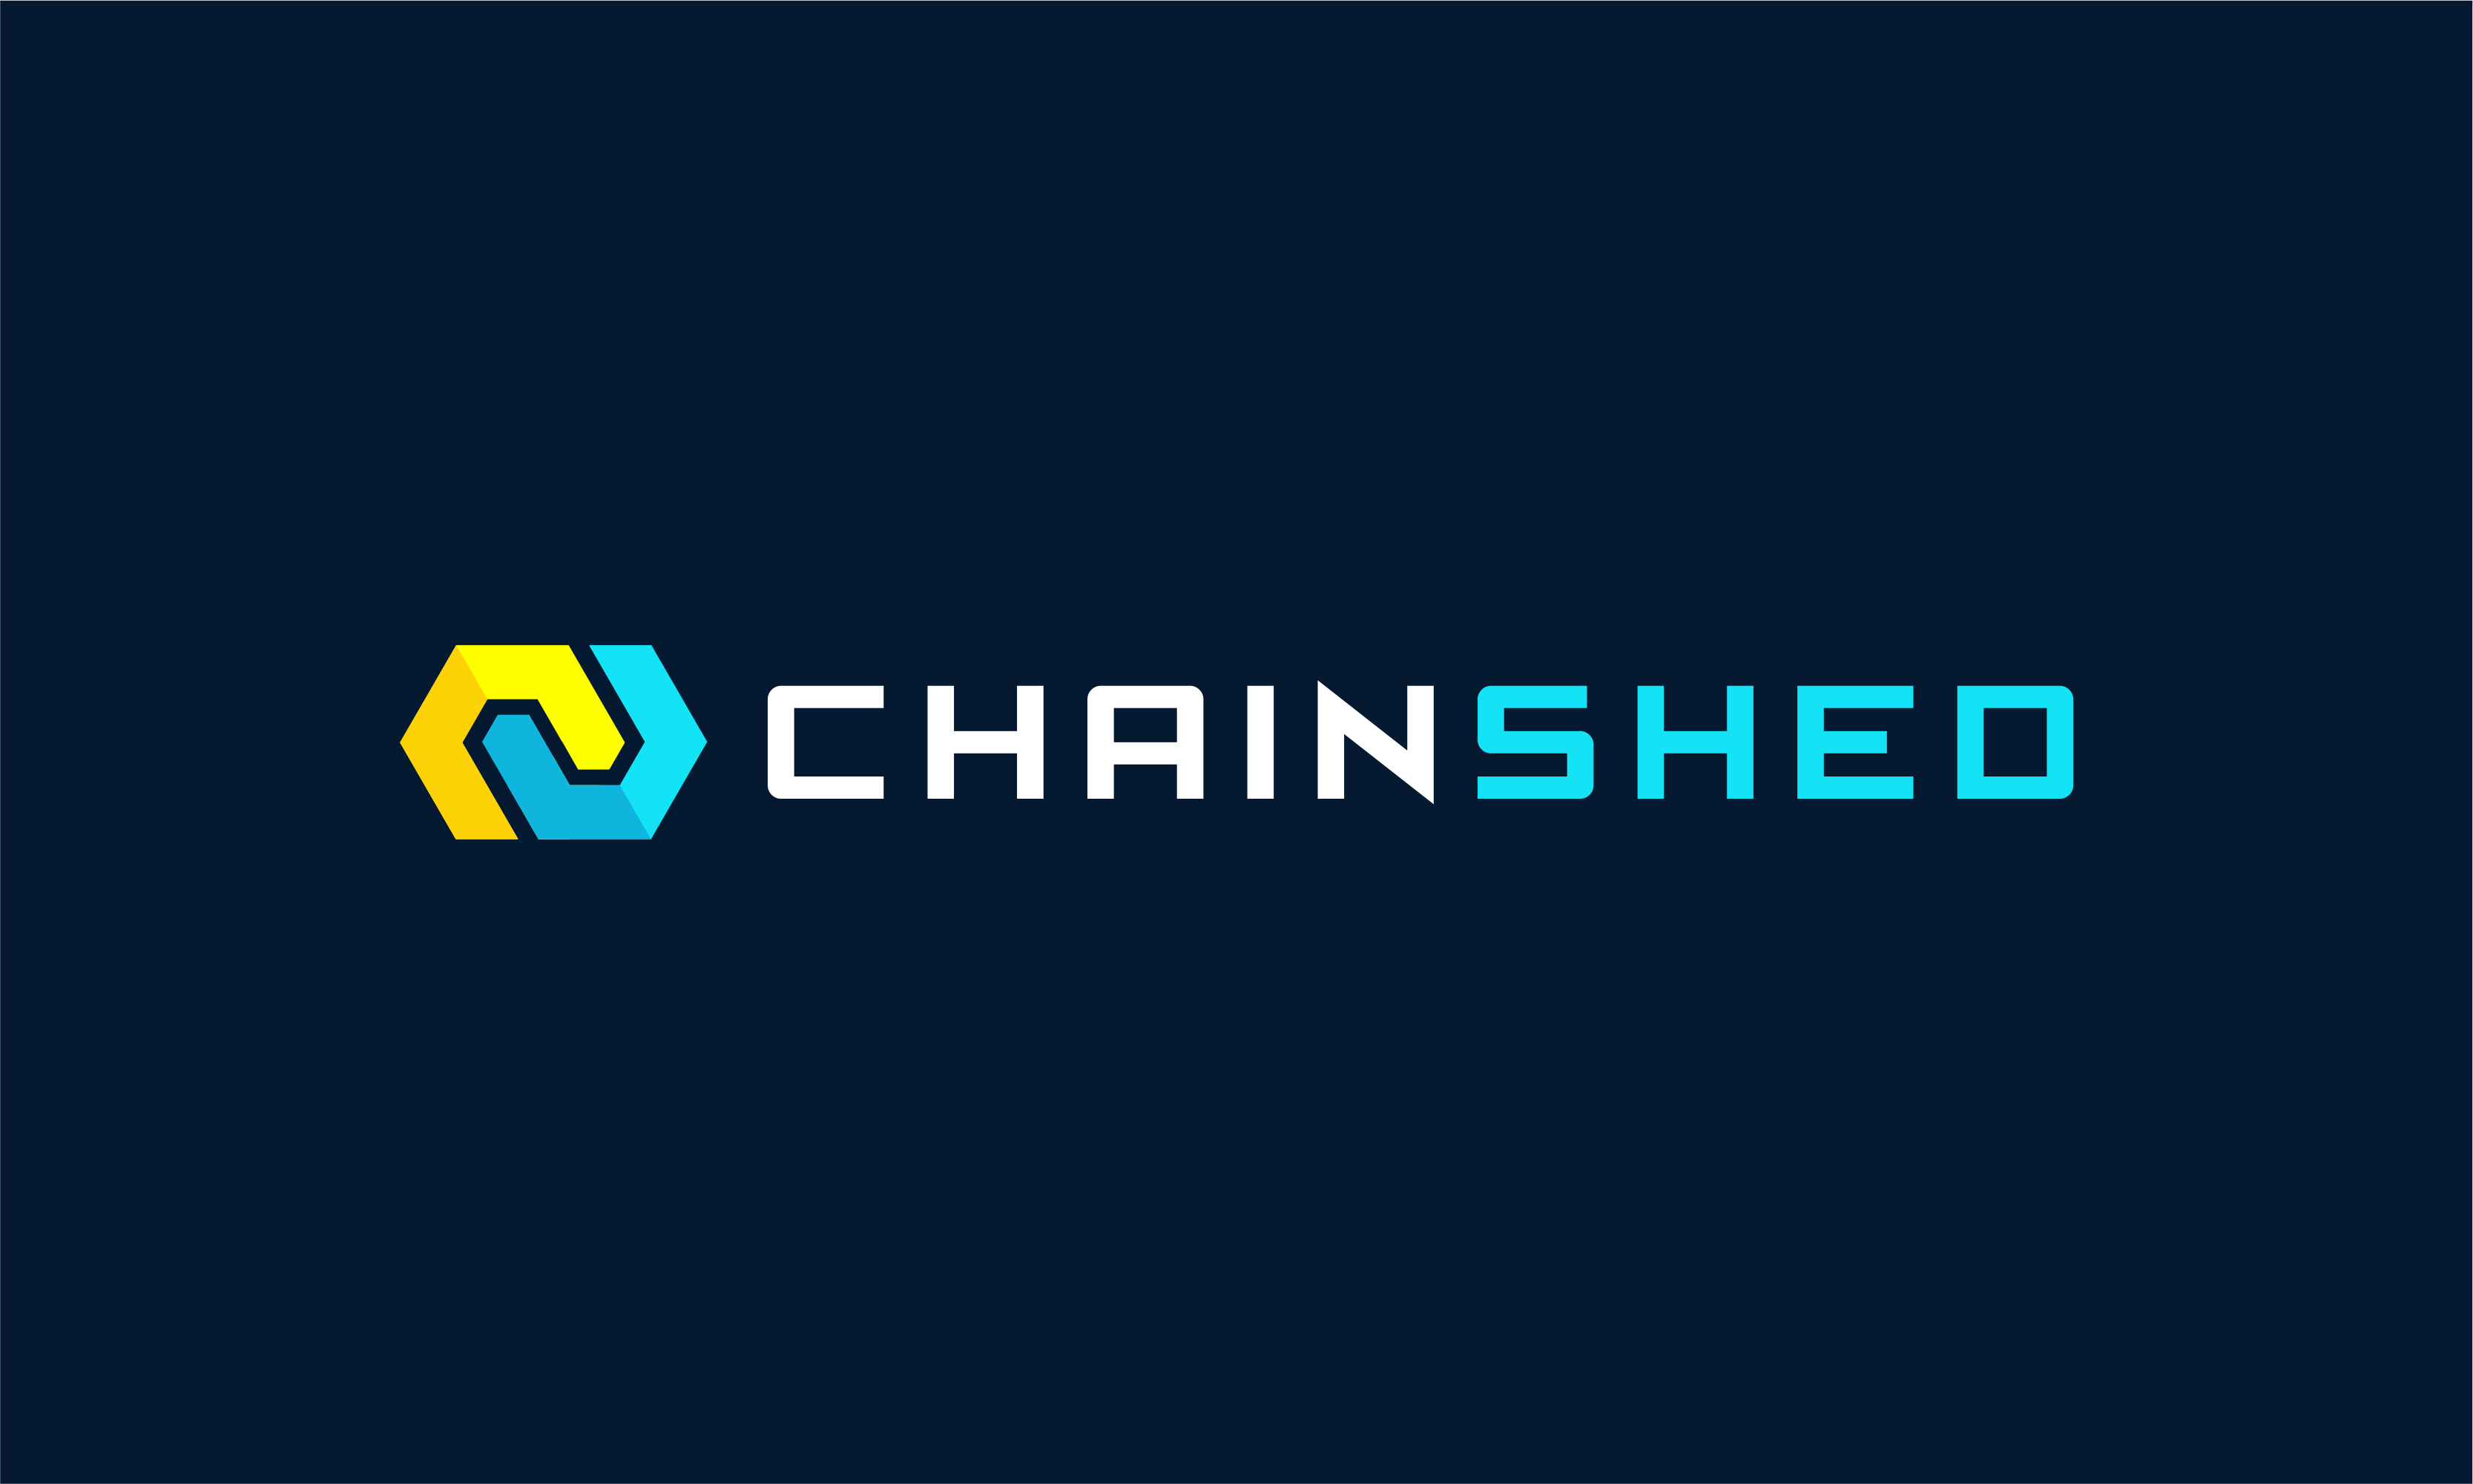 Chainshed